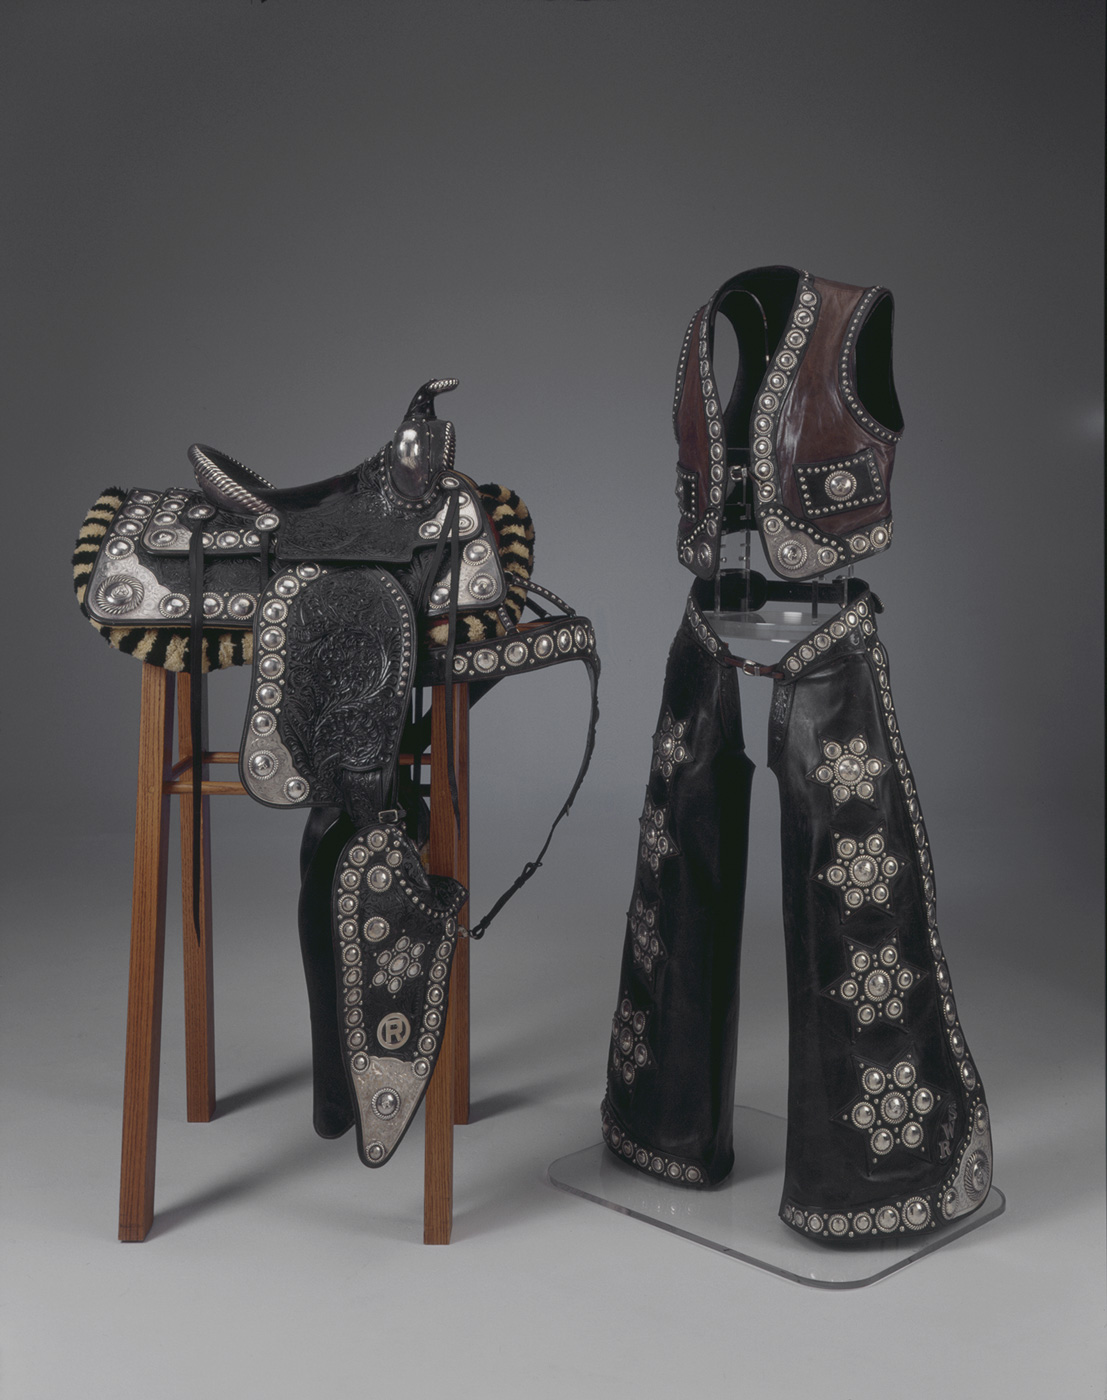 A black leather saddle decorated with sterling silver on a wooden armature next to a matching vest and chaps.